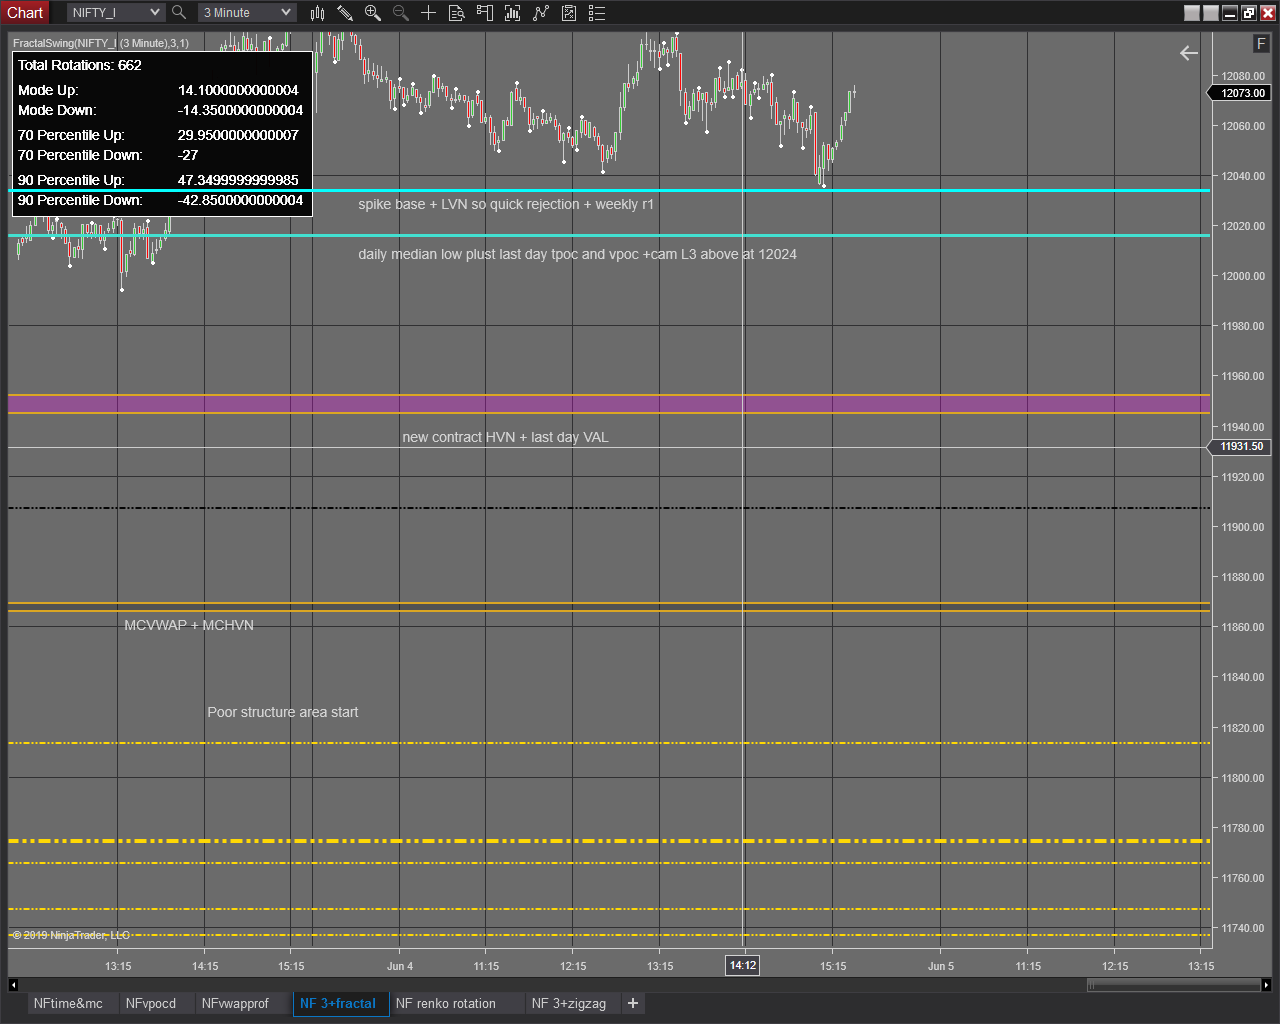 Rotation / Swing Indicator Similar to FT71? - NinjaTrader